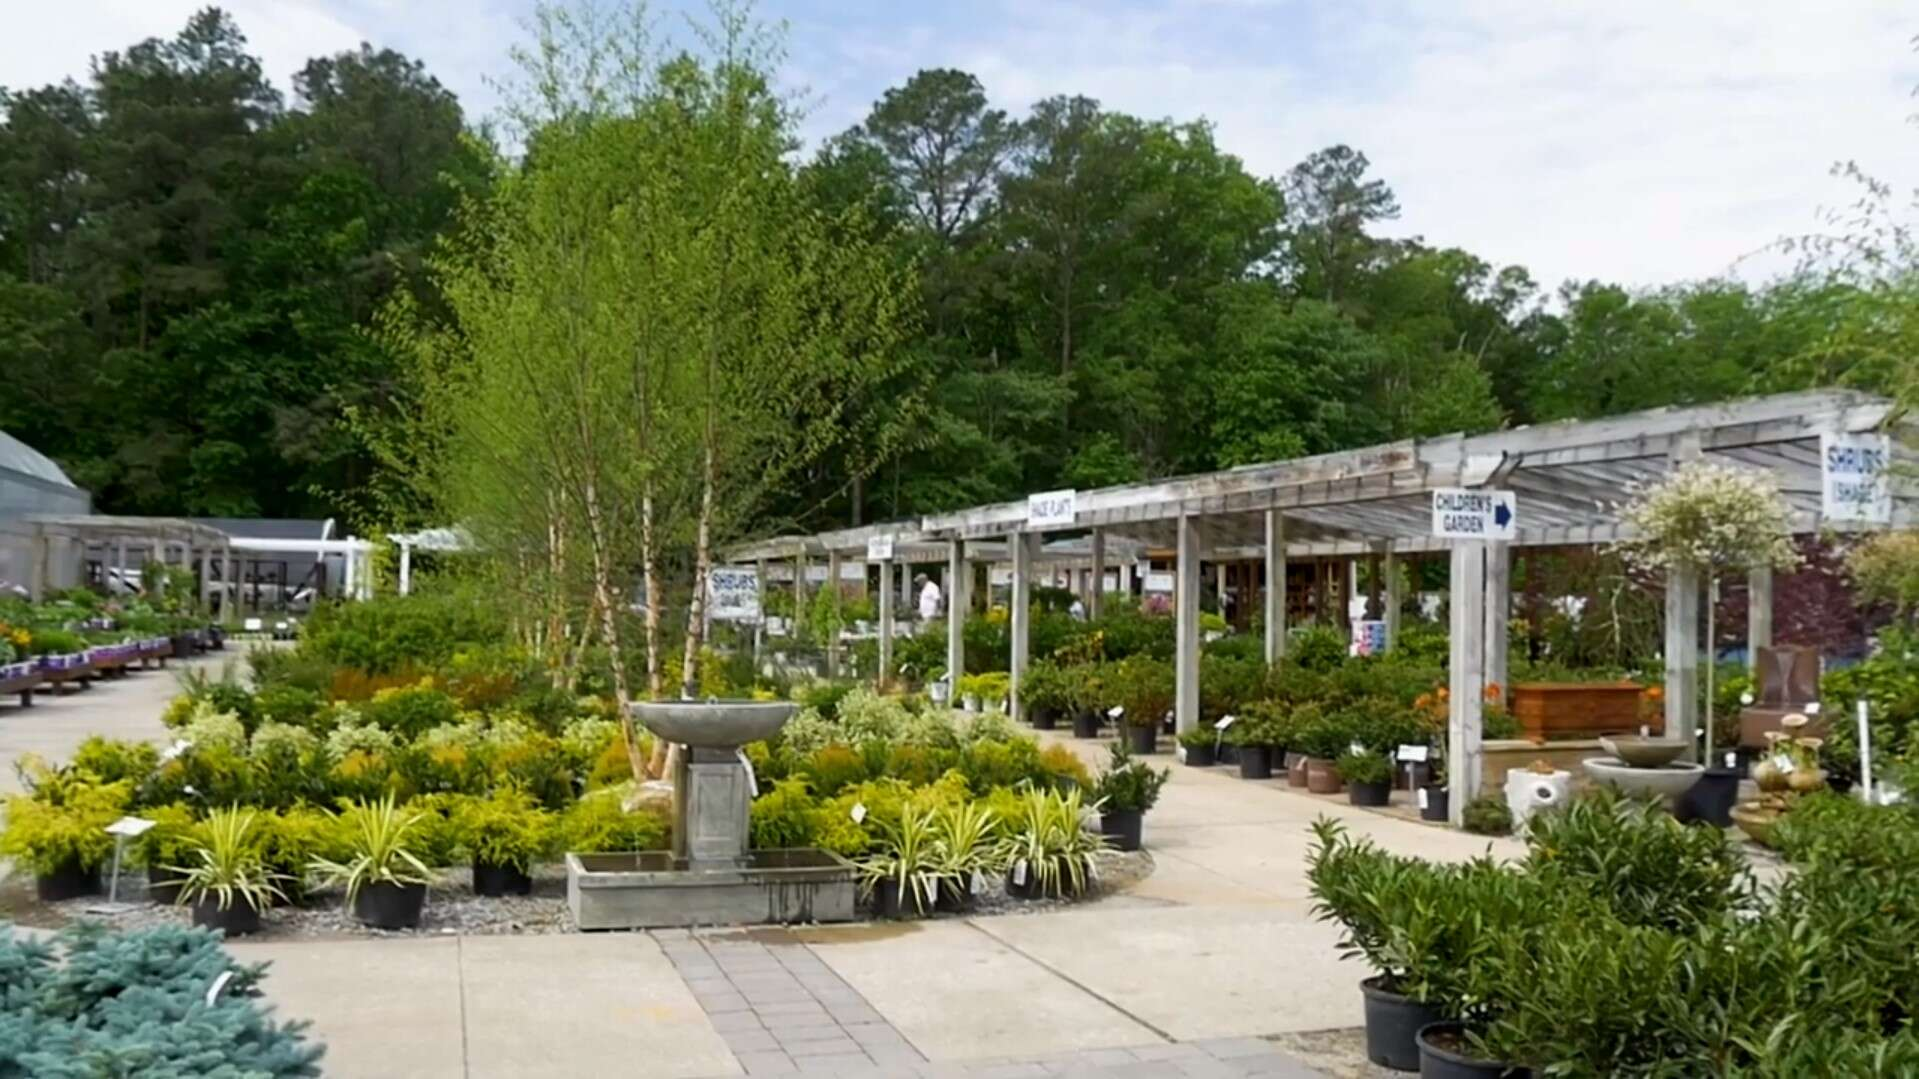 East Coast Garden Center: A Store Within A Store // Proven Winners